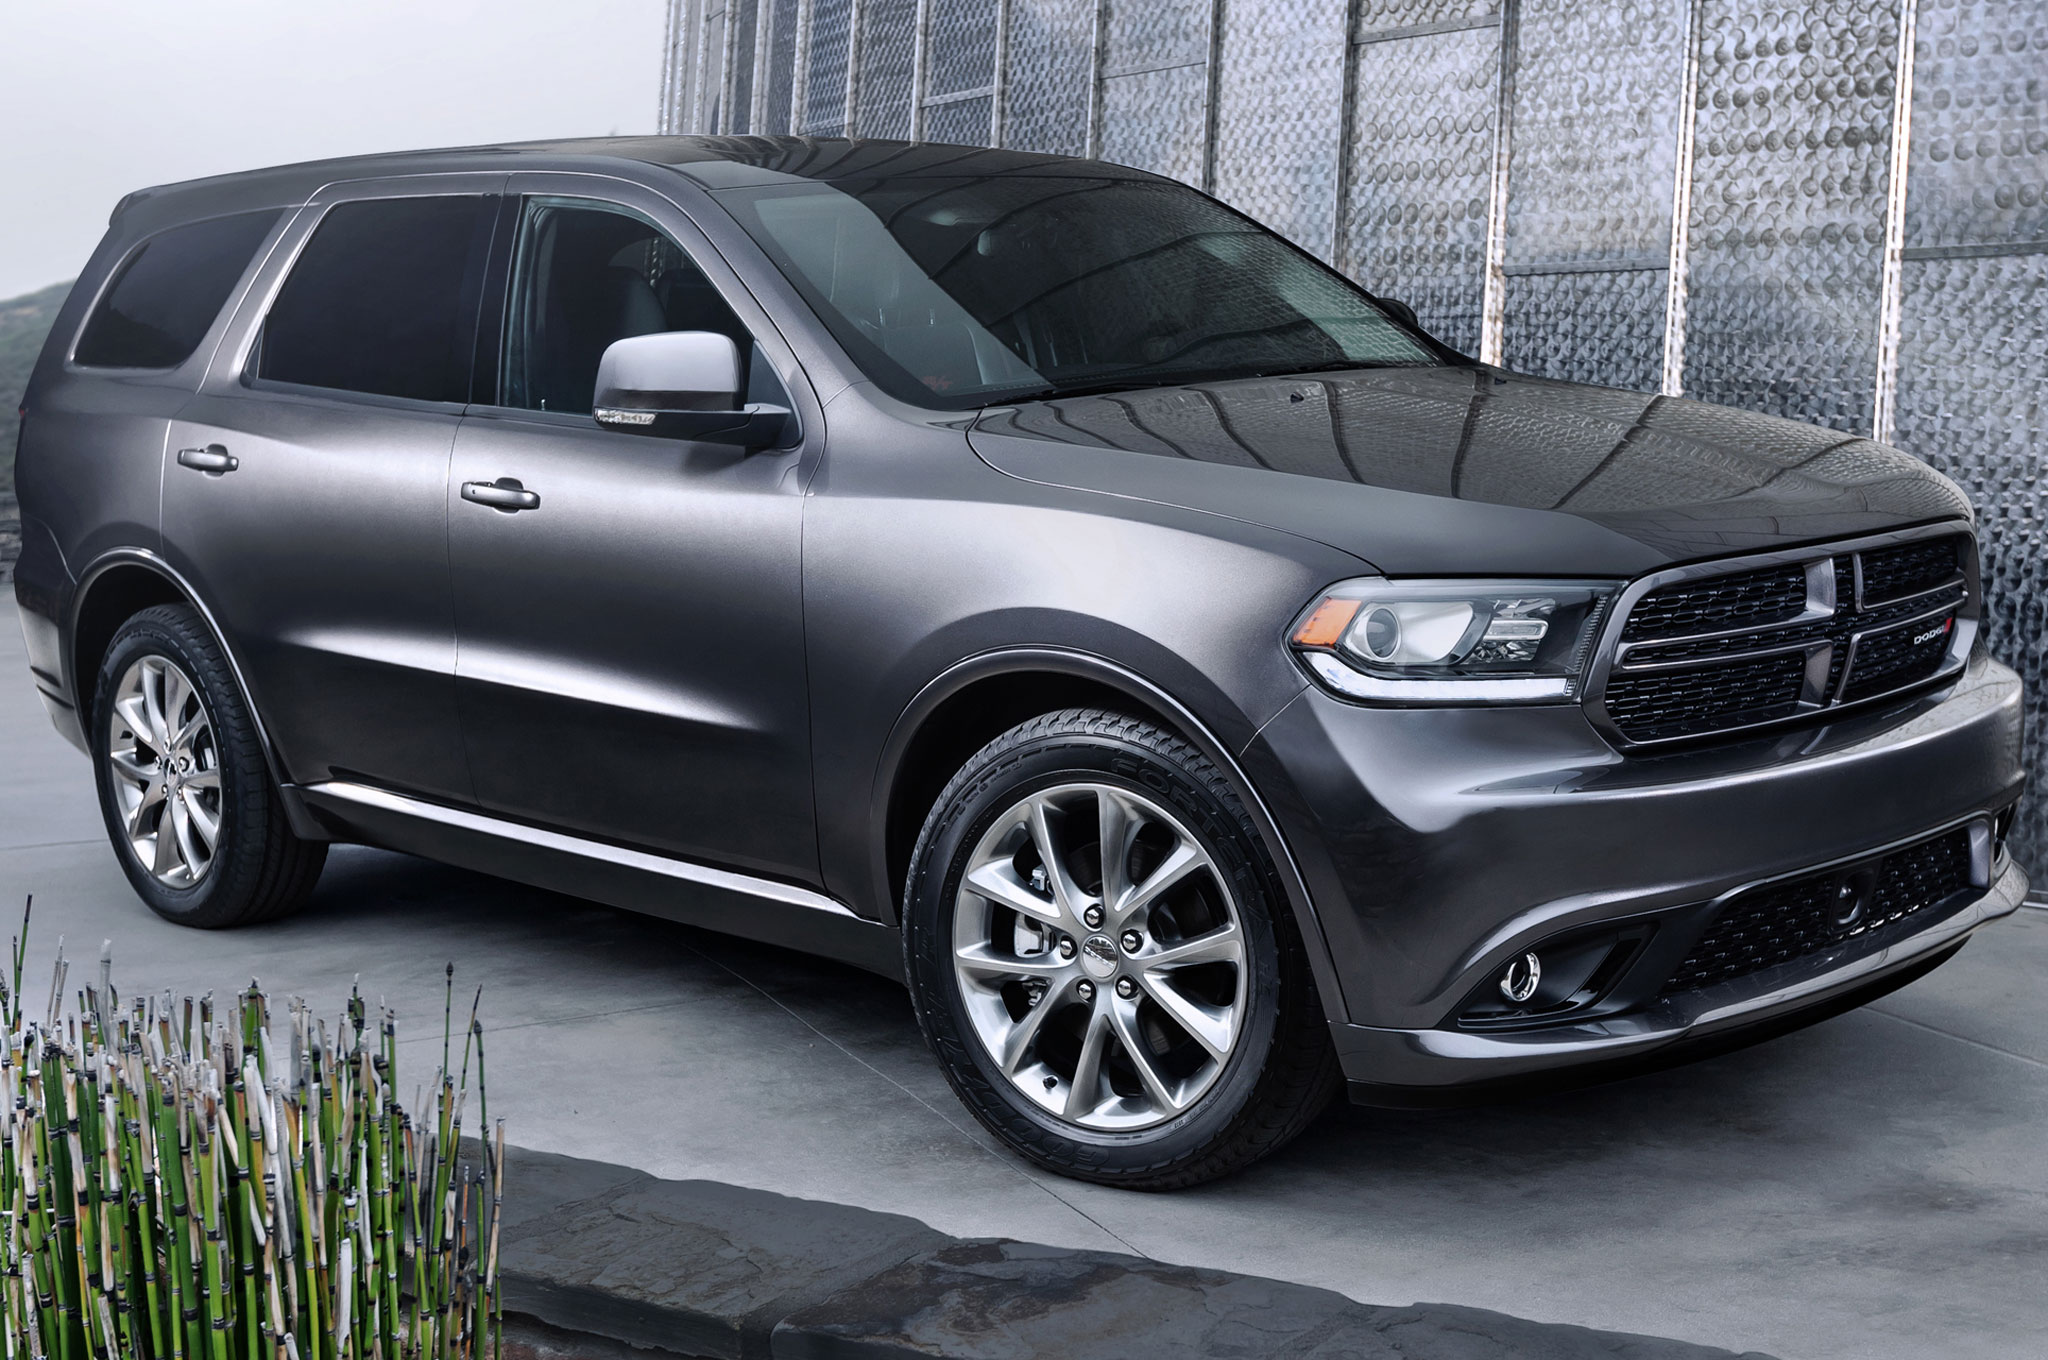 Ford durango 2015 photo - 5